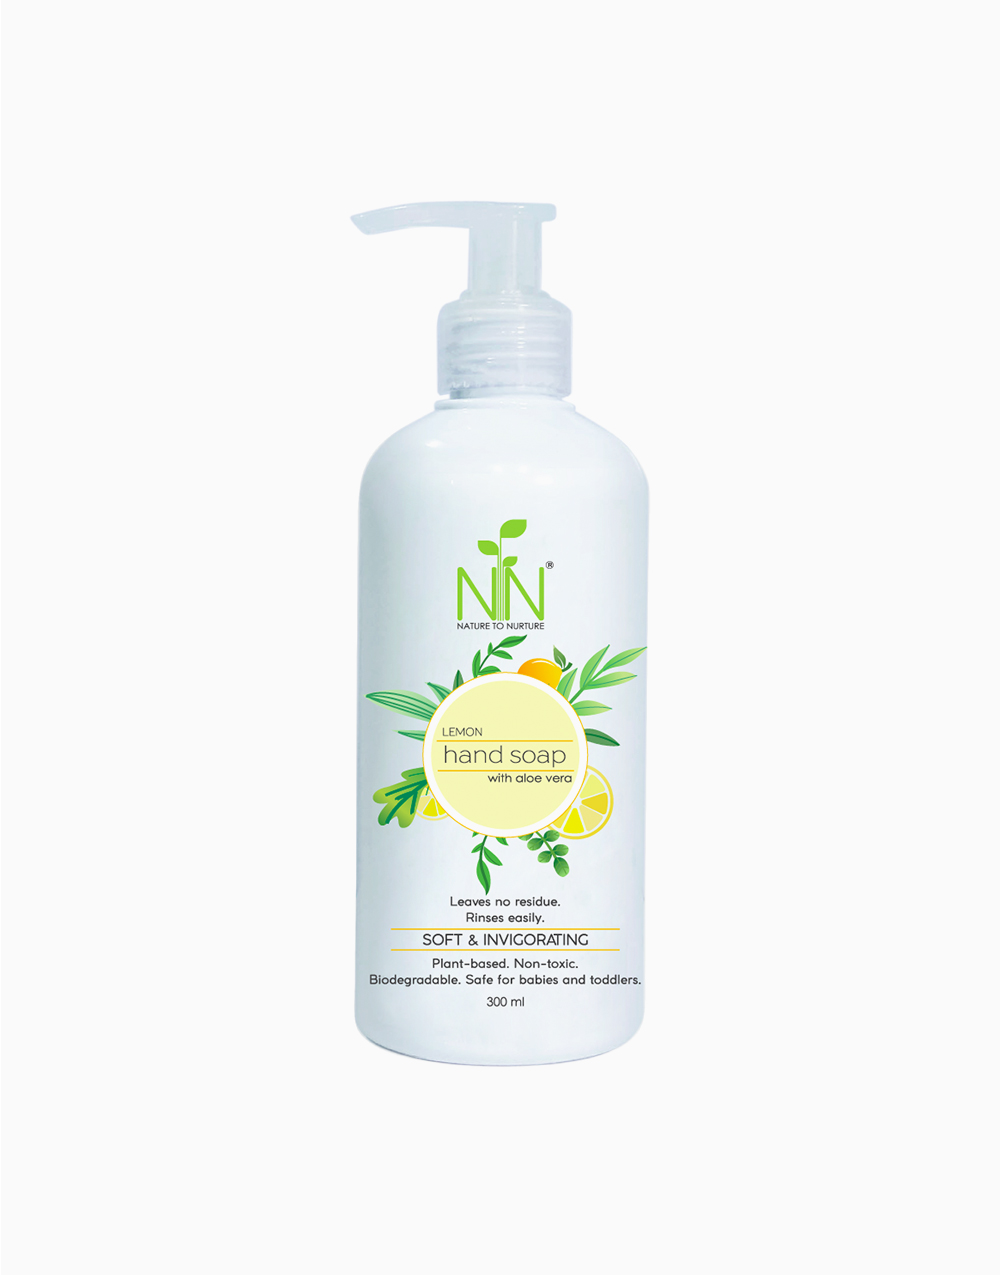 Hand Soap With Aloe Vera by Nature to Nurture | Lemon